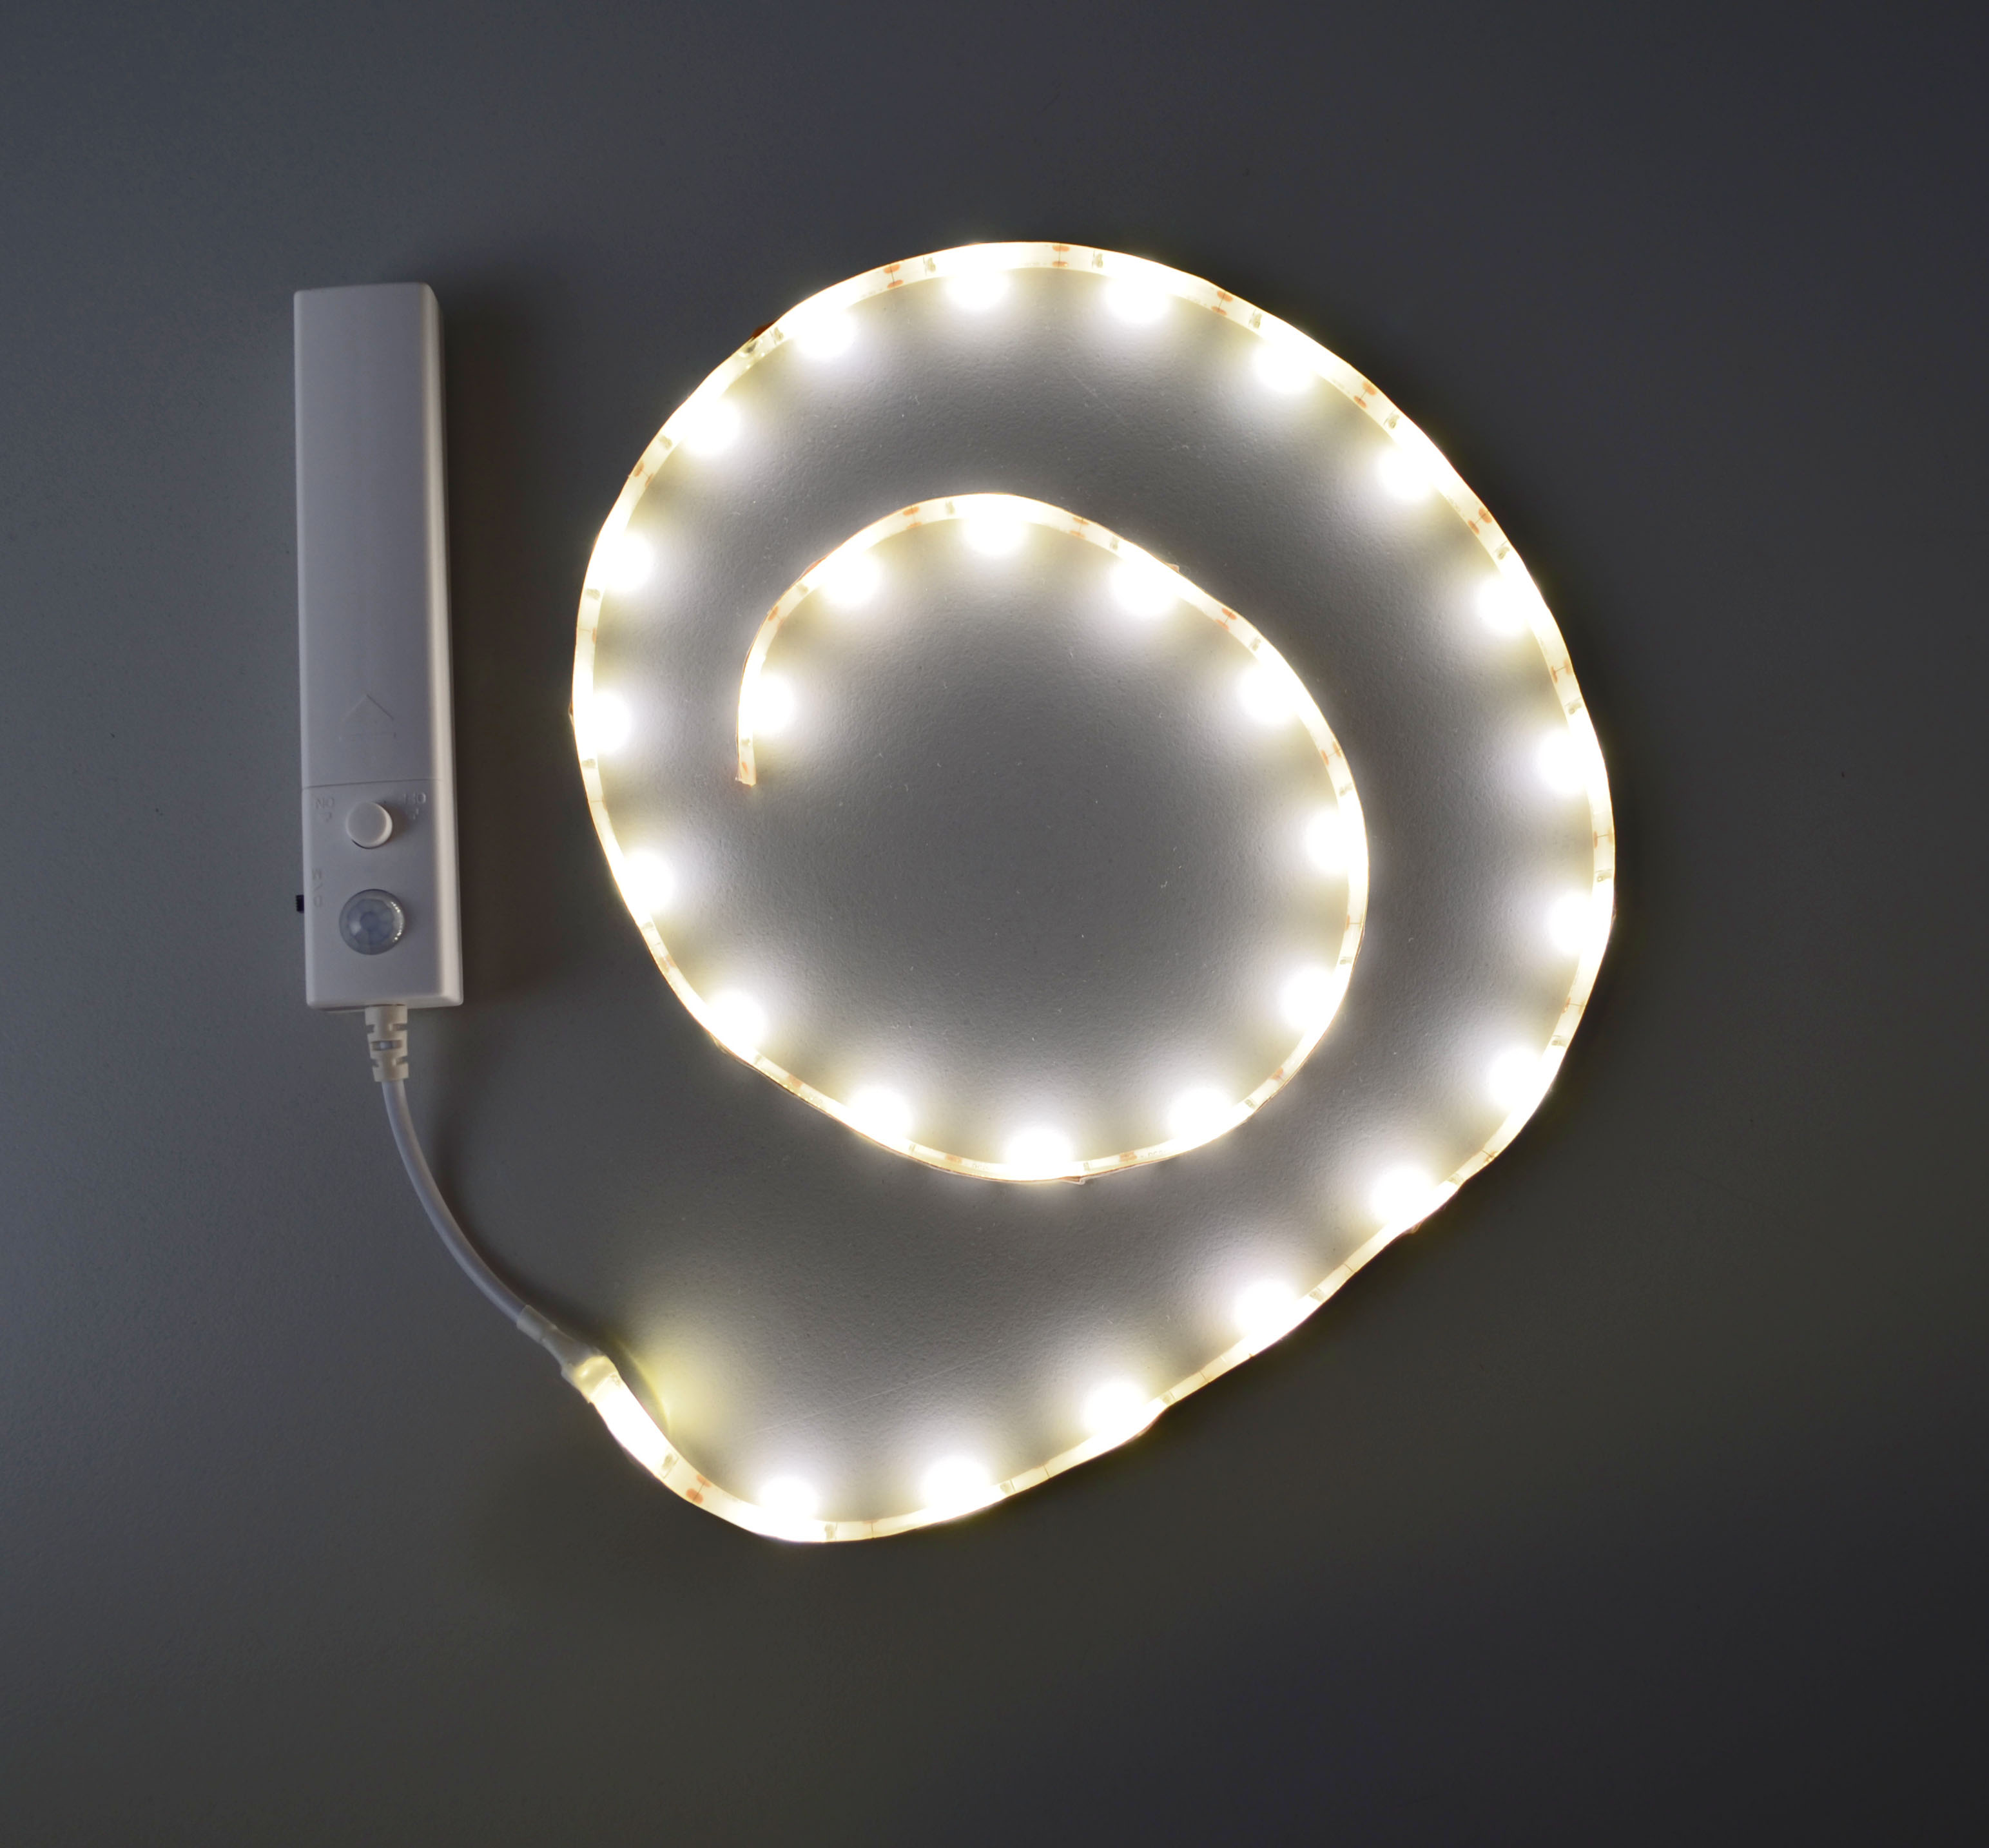 x4 life led band 100cm mit bewegungsmelder batterie 30 leds 300lm ebay. Black Bedroom Furniture Sets. Home Design Ideas